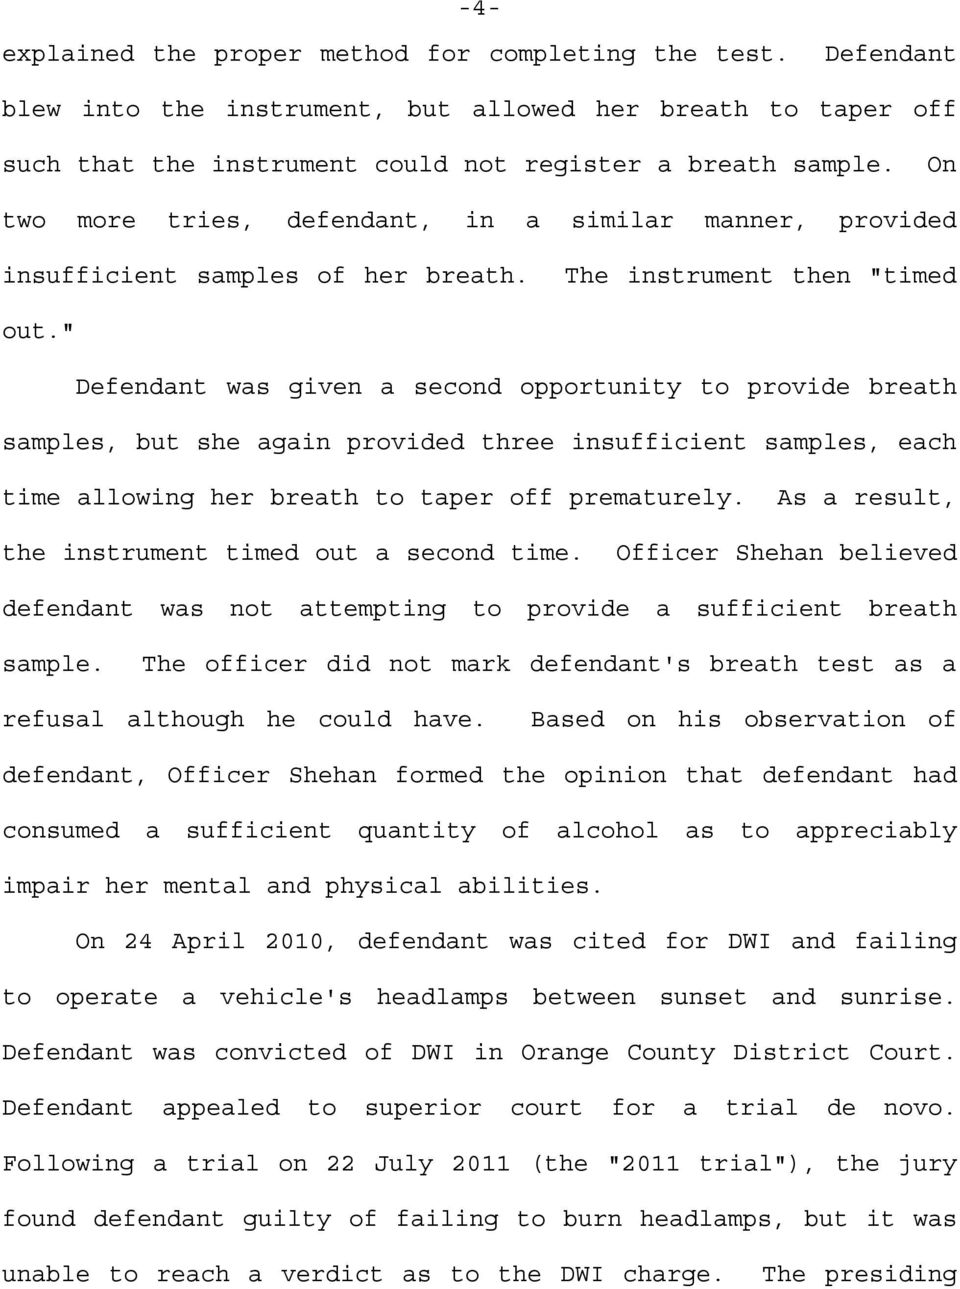 """ Defendant was given a second opportunity to provide breath samples, but she again provided three insufficient samples, each time allowing her breath to taper off prematurely."